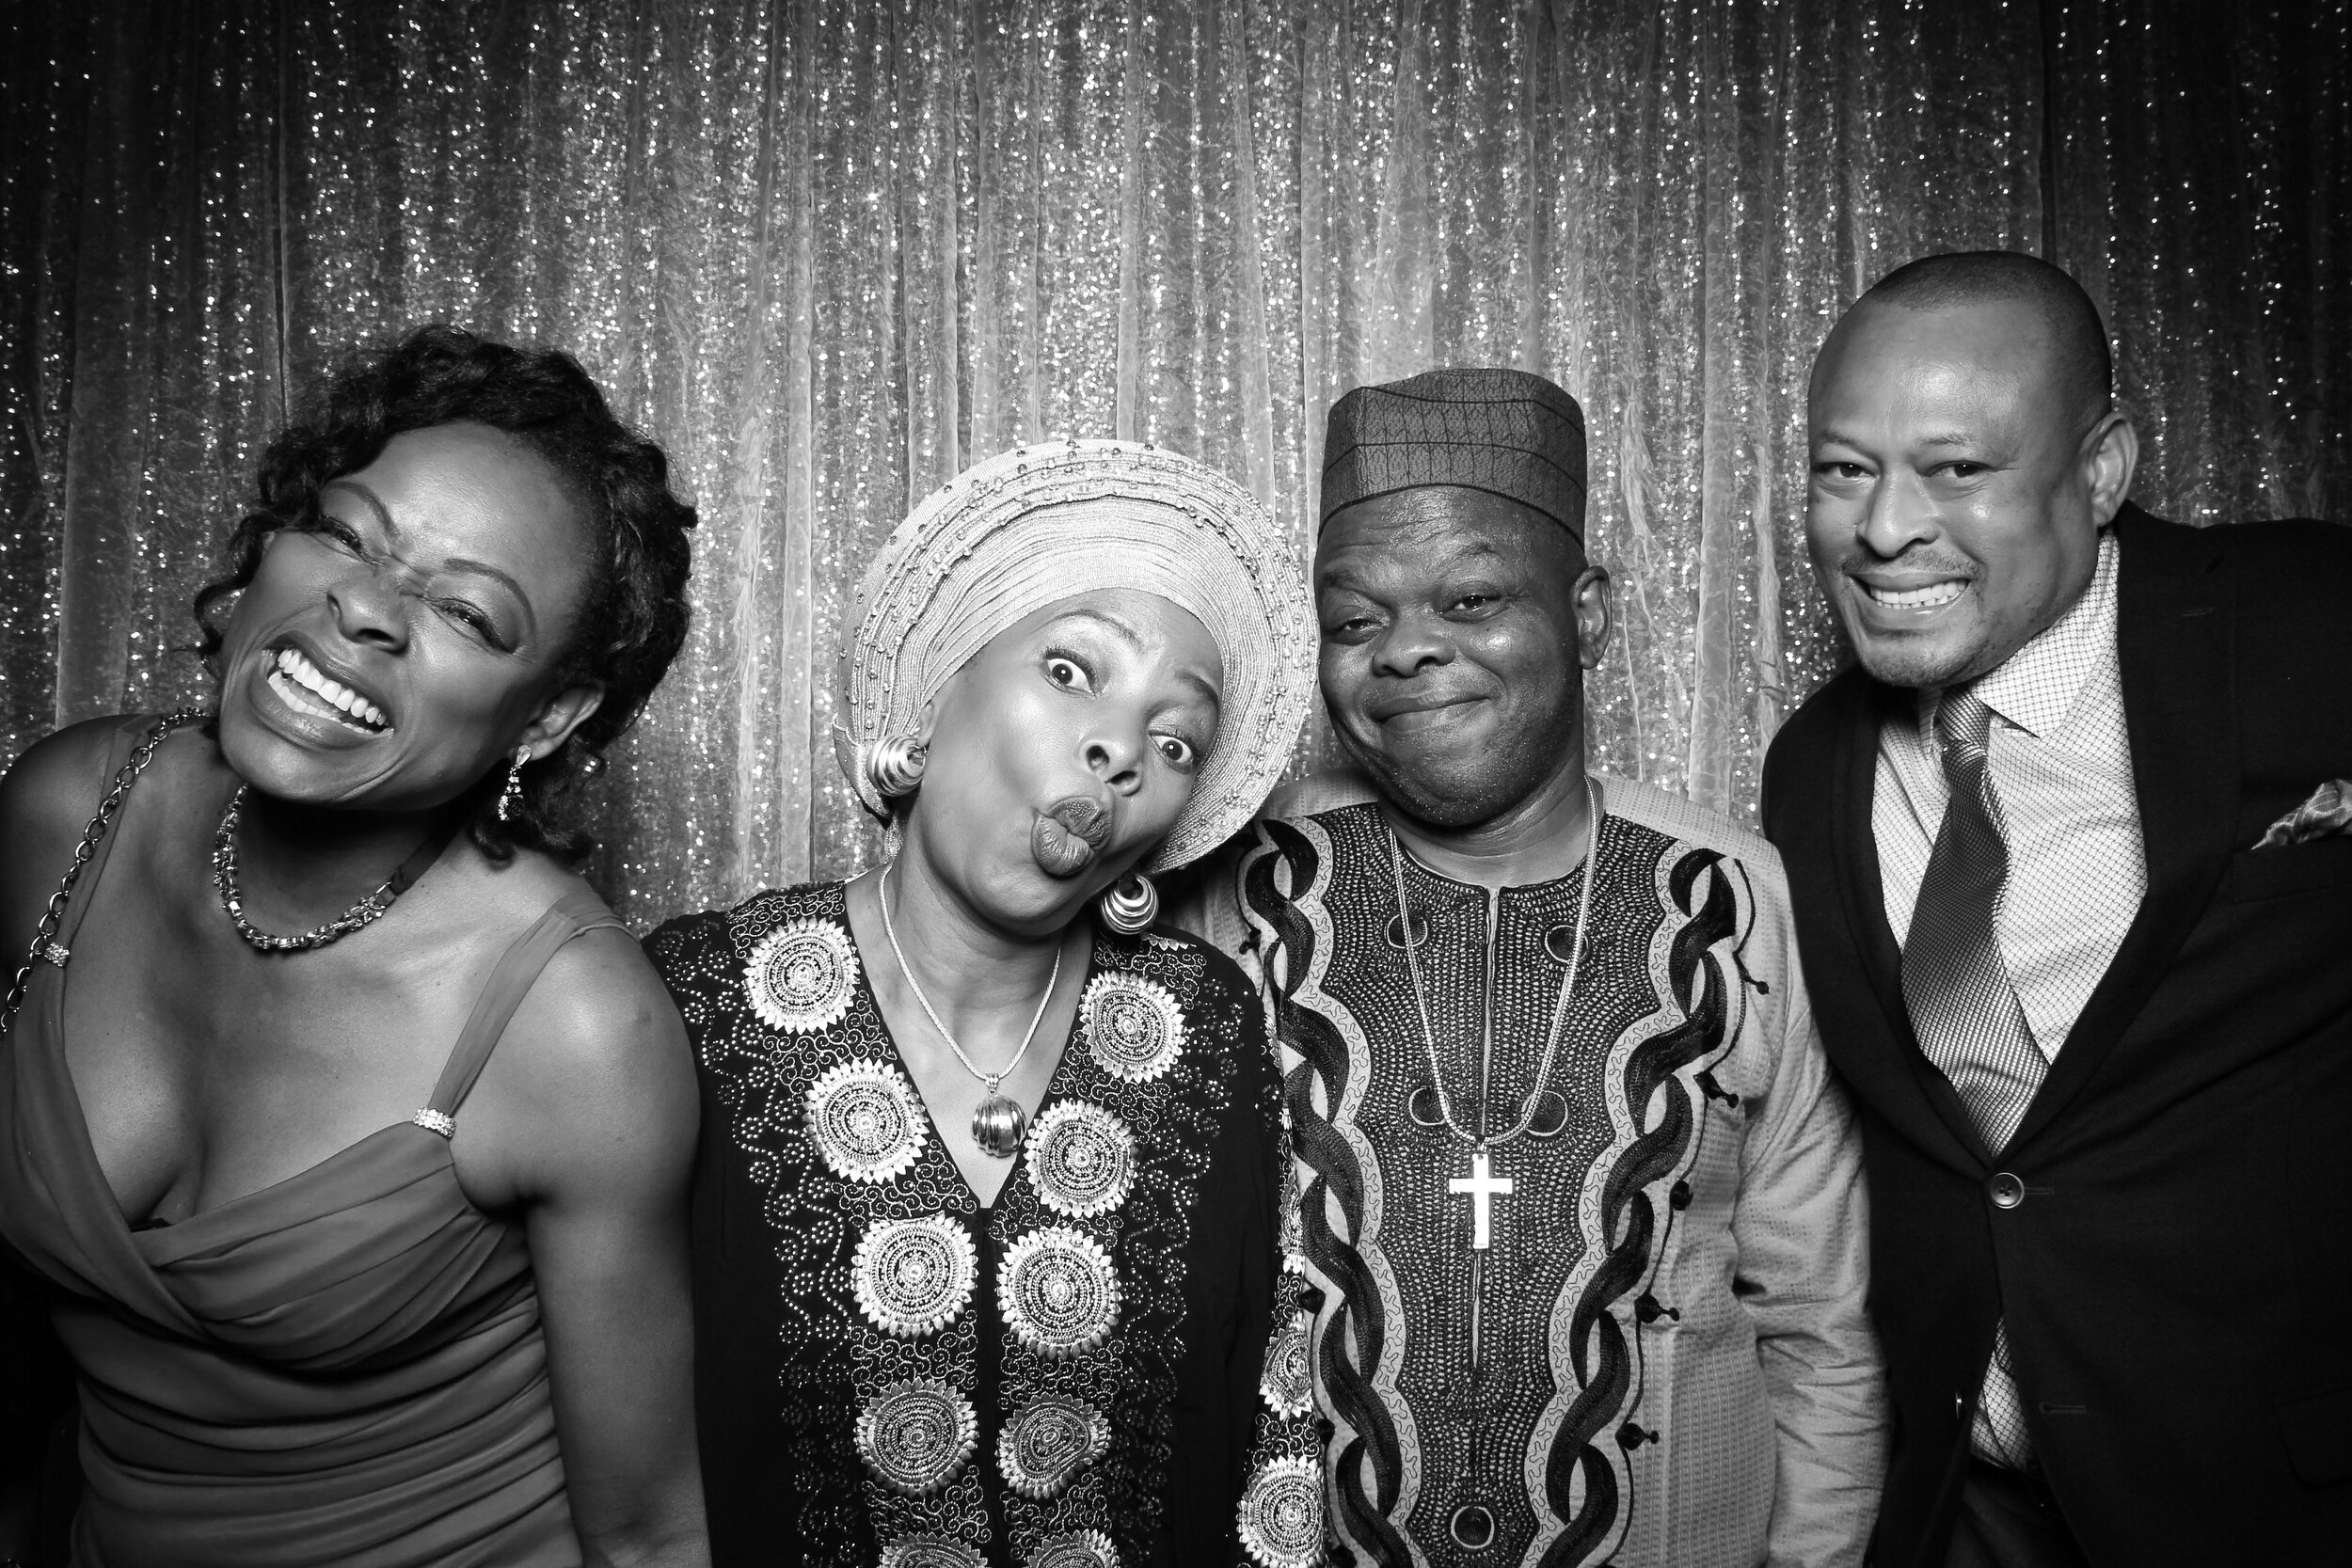 Ravisloe_Country_Club_Wedding_Photo_Booth_13.jpg